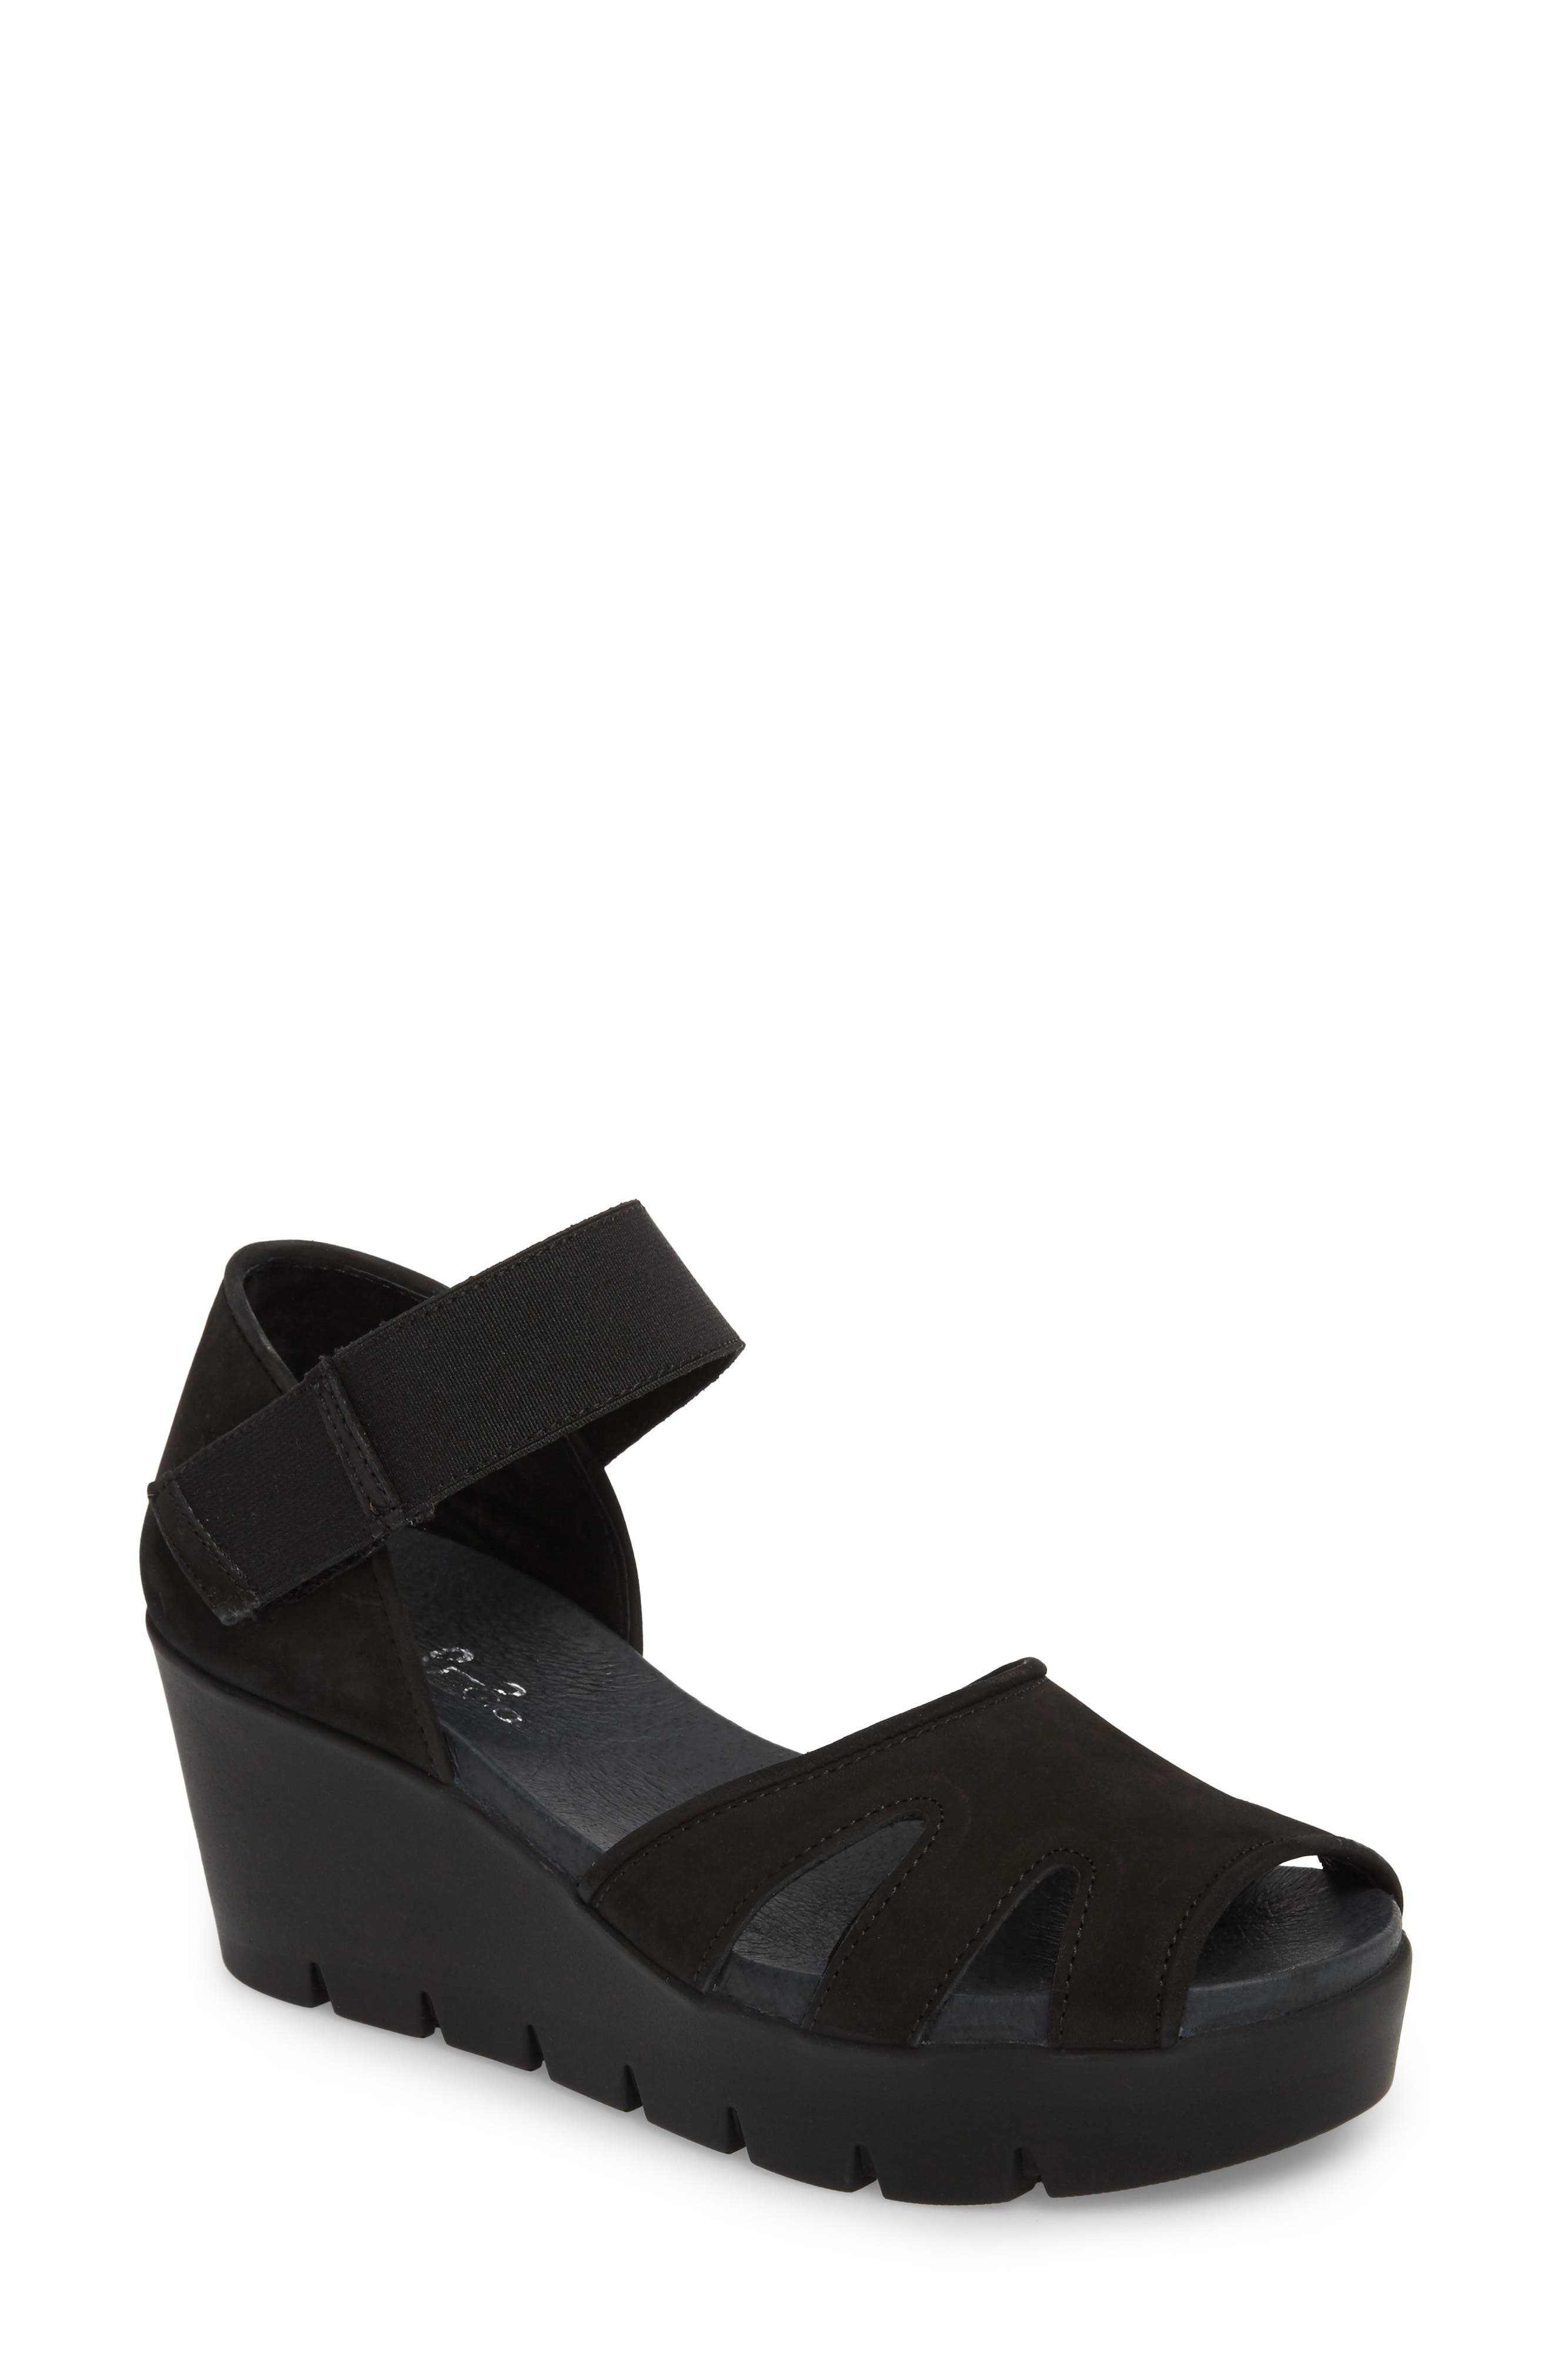 Sharon Platform Wedge Sandal,                         Main,                         color, BLACK NUBUCK LEATHER